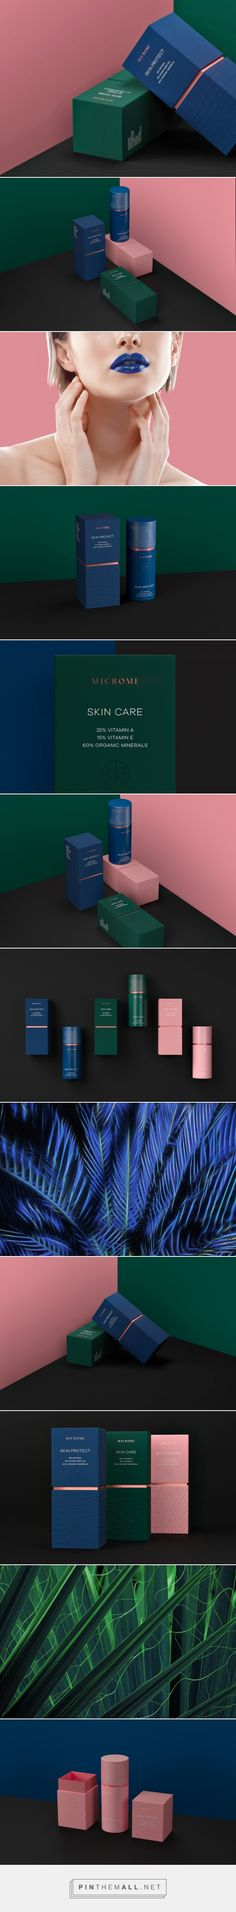 Microme Skincare Packaging by Funky Business | Fivestar Branding Agency – Design and Branding Agency & Curated Inspiration Gallery